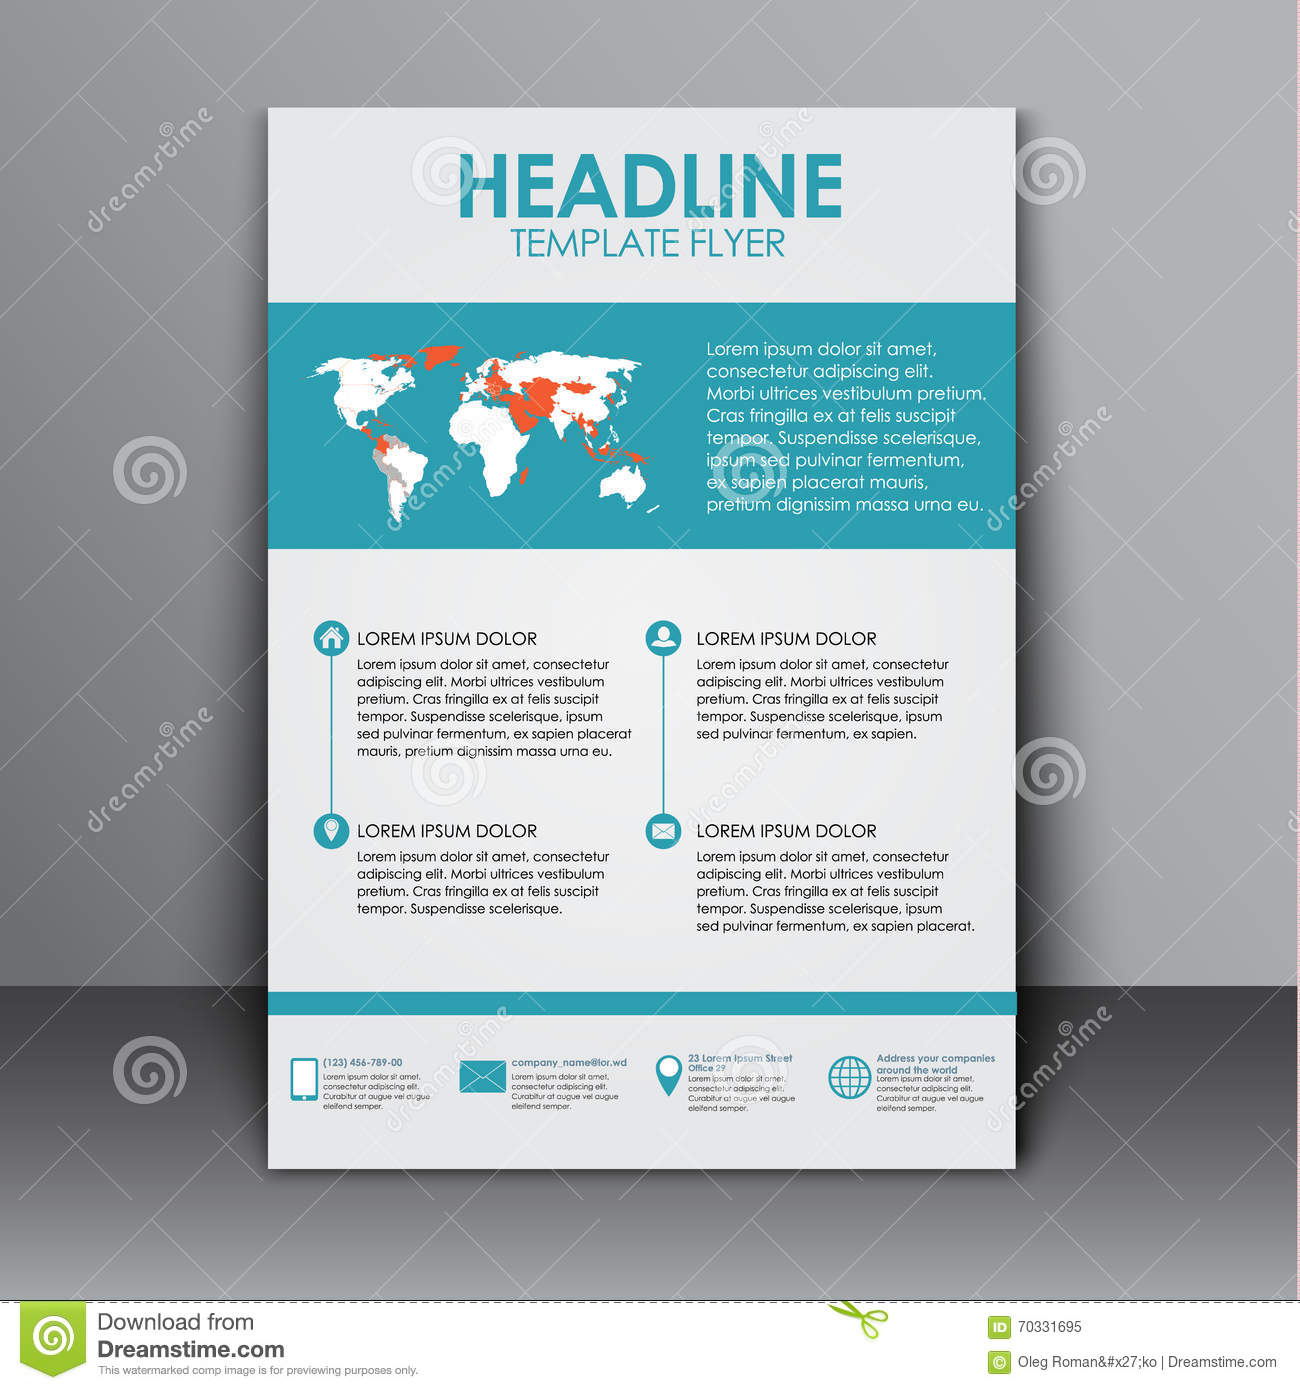 Template flyer with information for advertising stock vector template flyer with information for advertising publicscrutiny Images